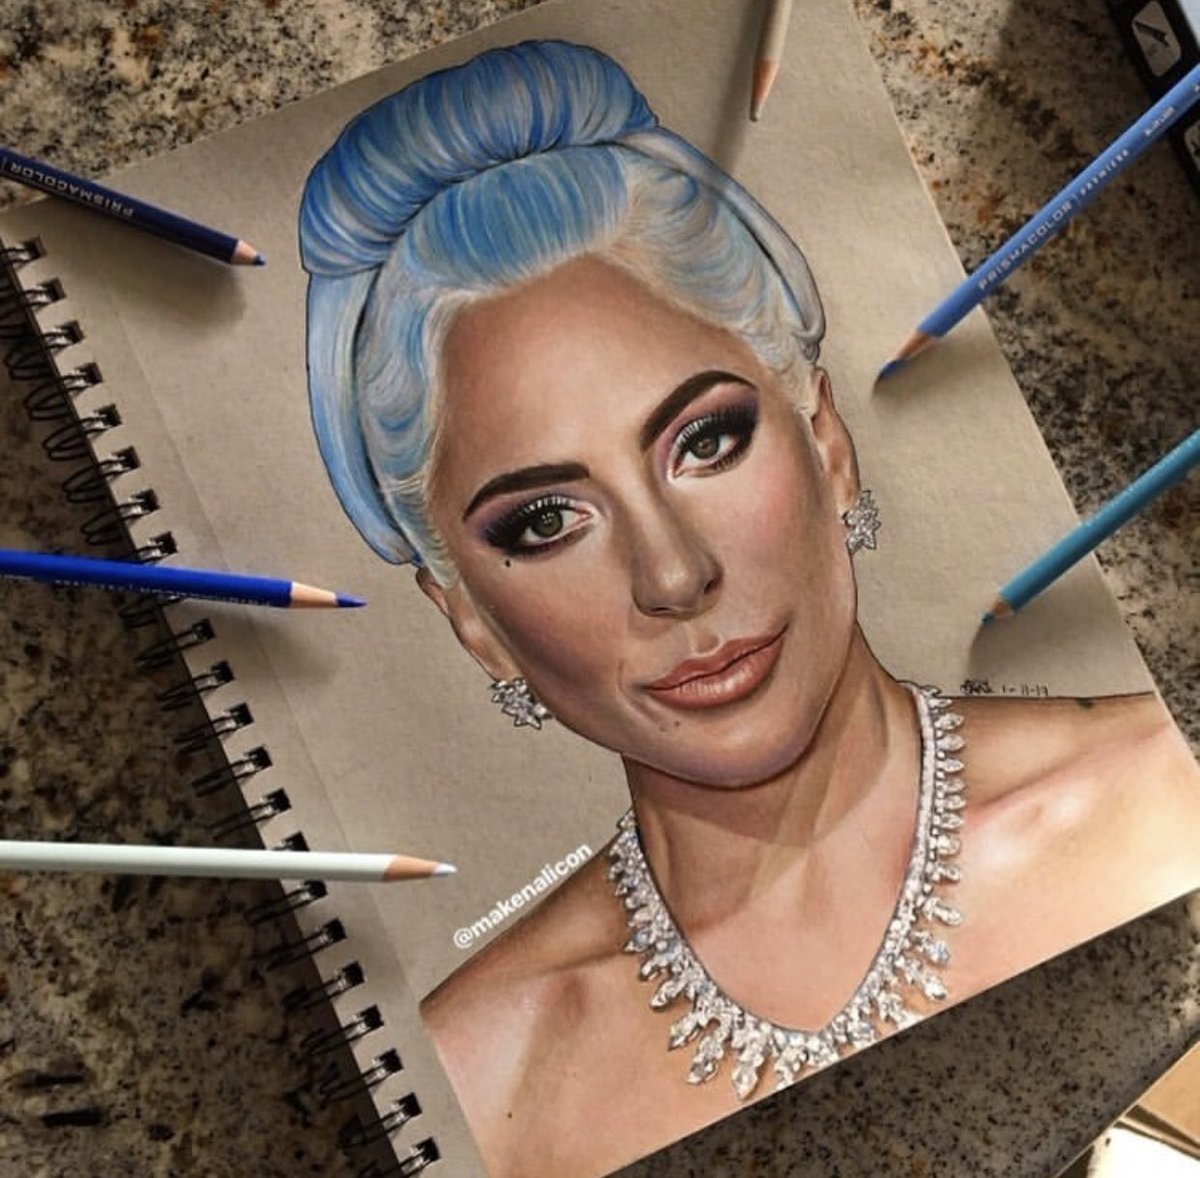 CHECK IT OUT: Lady Gaga Fan Artwork by @makenalicon! @ladygaga #GoldenGlobes  #AStarIsBorn<br>http://pic.twitter.com/2q7aH7pWyv